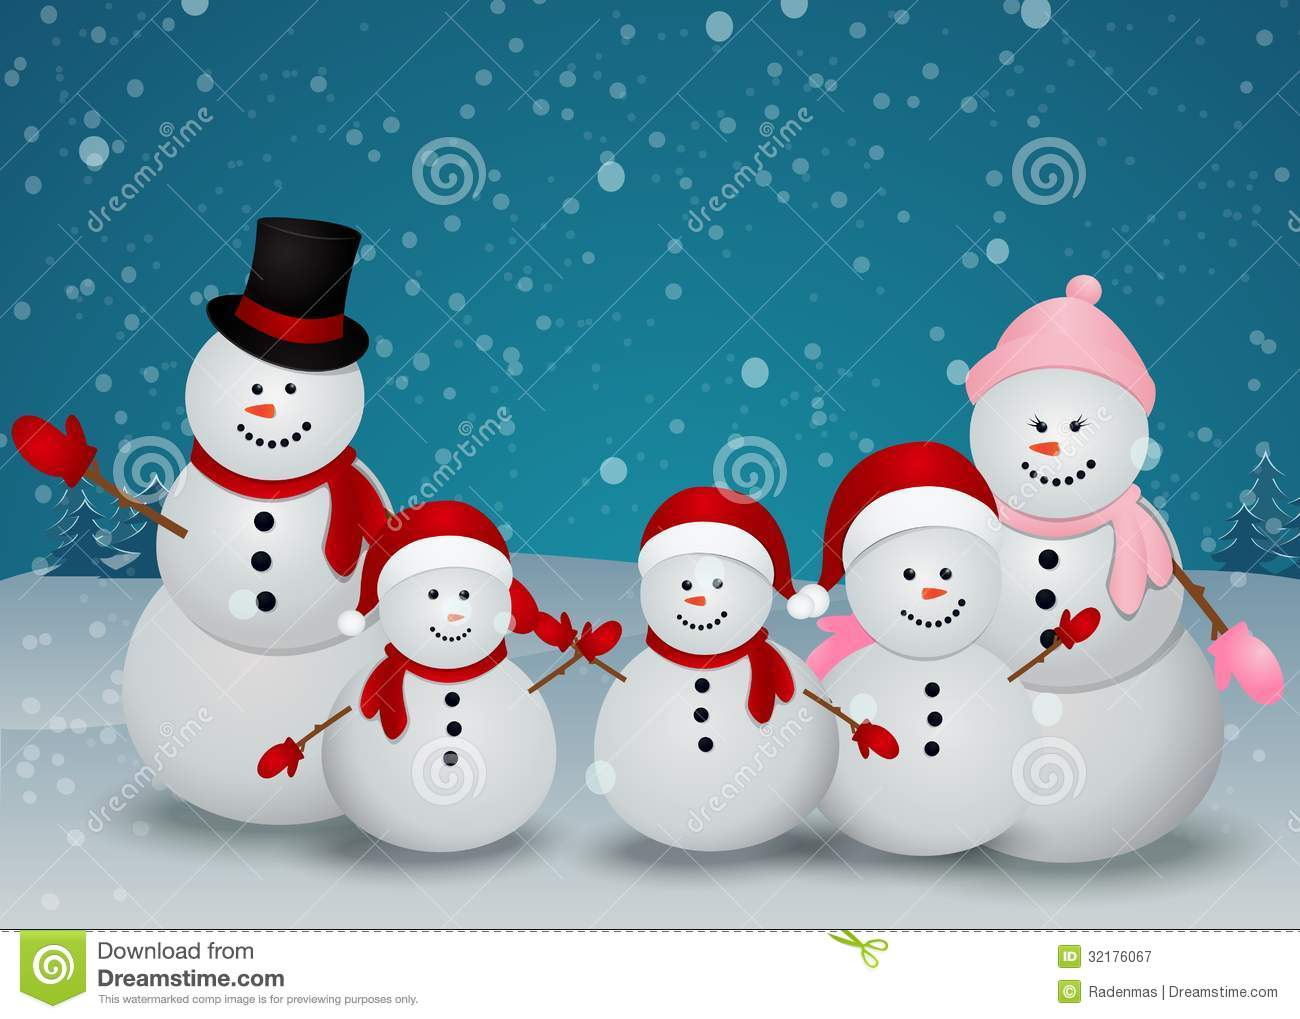 snowman family wallpaper - photo #4